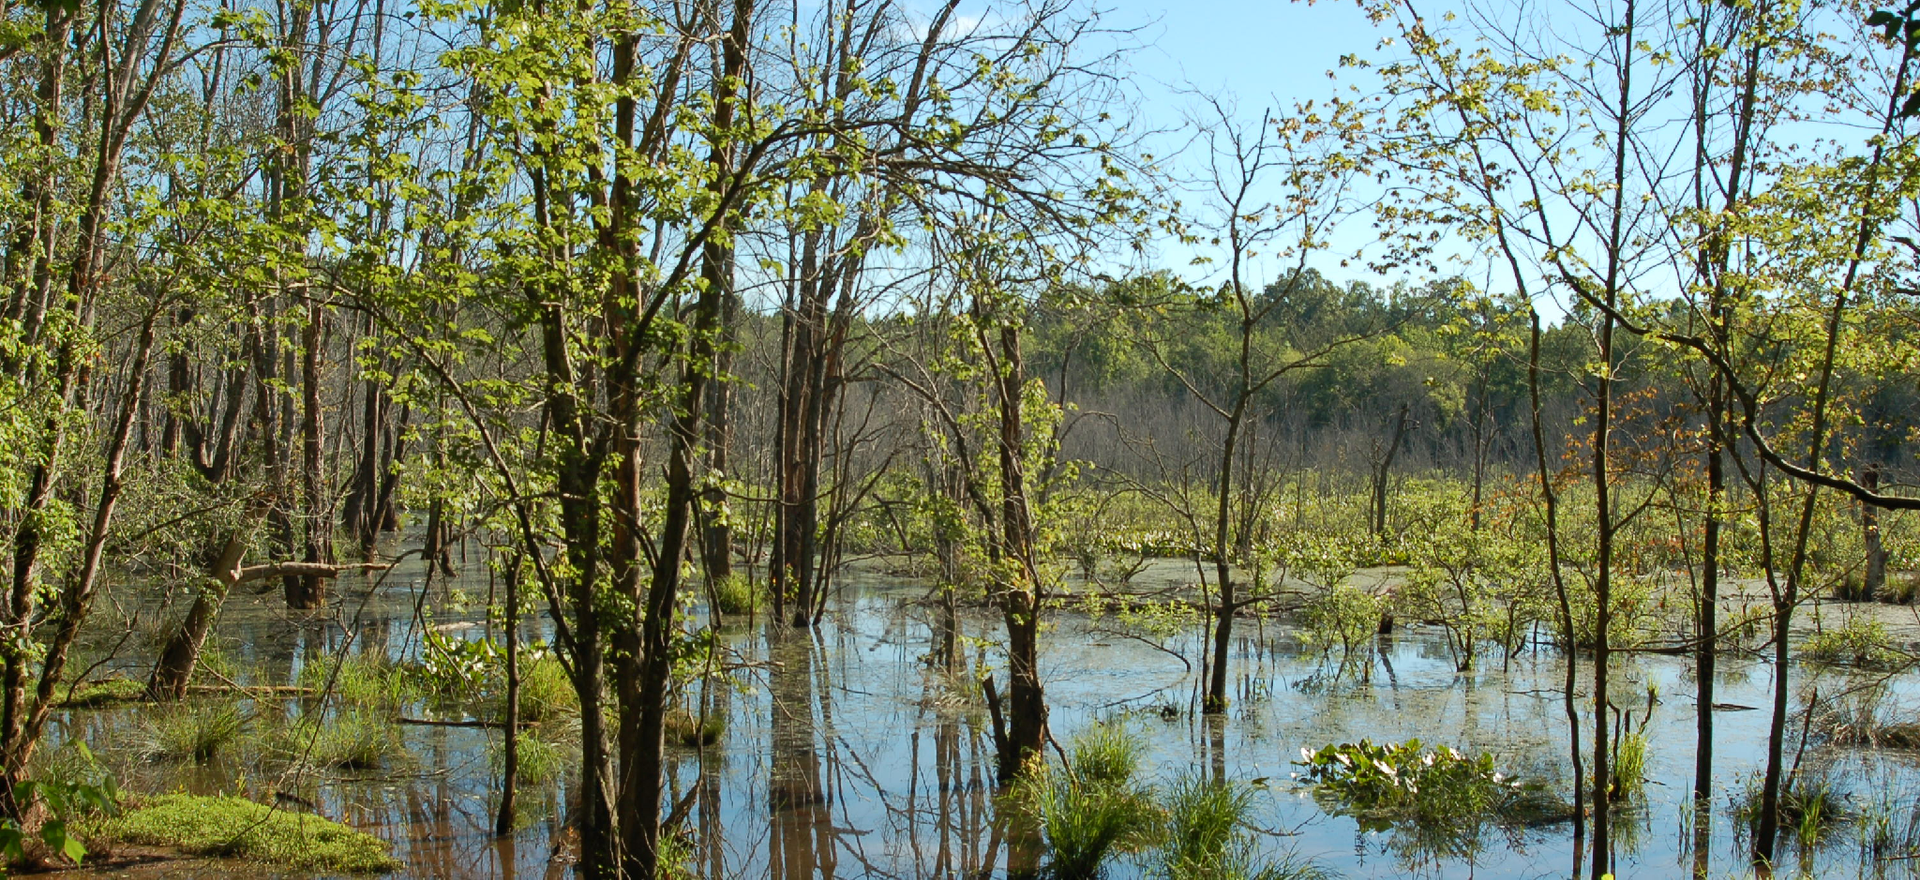 Jefferson City Schools uses this 177-acre property on the Middle Oconee River to educate students about wetland ecosystems.  It features bottomland hardwood forests, swamps, marshes and open water that provides habitat for otters, beavers, wading birds, and songbirds - and even has a heron rookery.